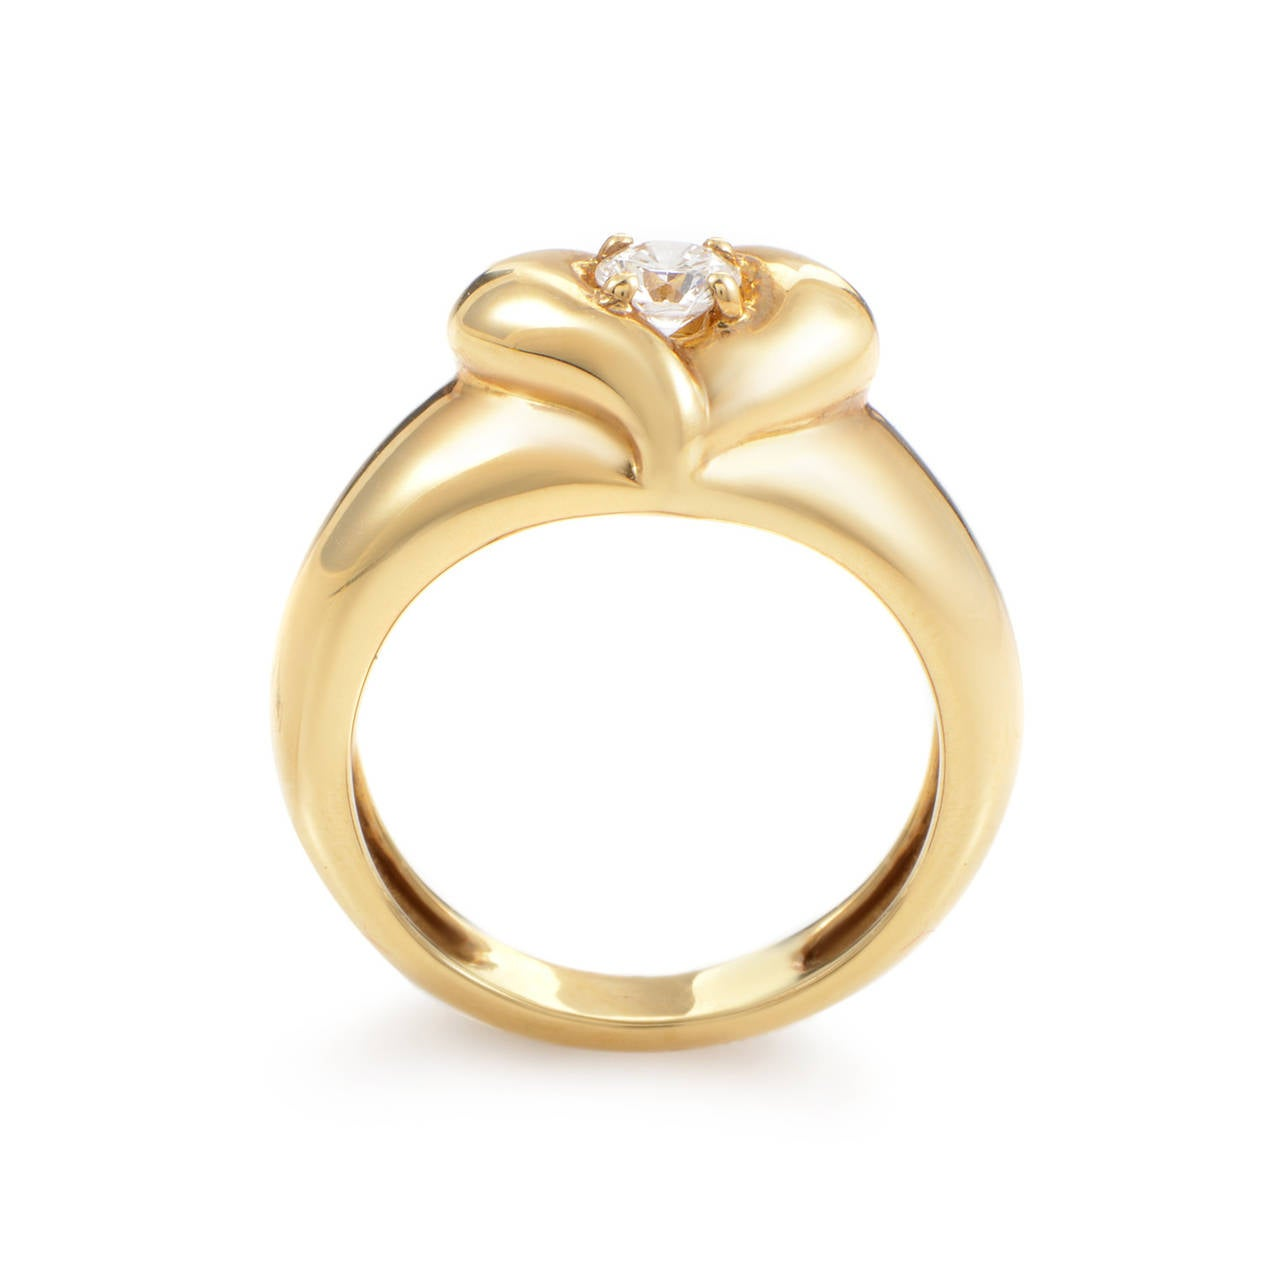 This Van Cleef & Arpels ring boasts a romantic design that is sure to steal your heart. The ring is made of 18K yellow gold and boasts a heart-shaped motif which holds a single, .25 carat white diamond. Ring Size: 4.75 (48 3/8)